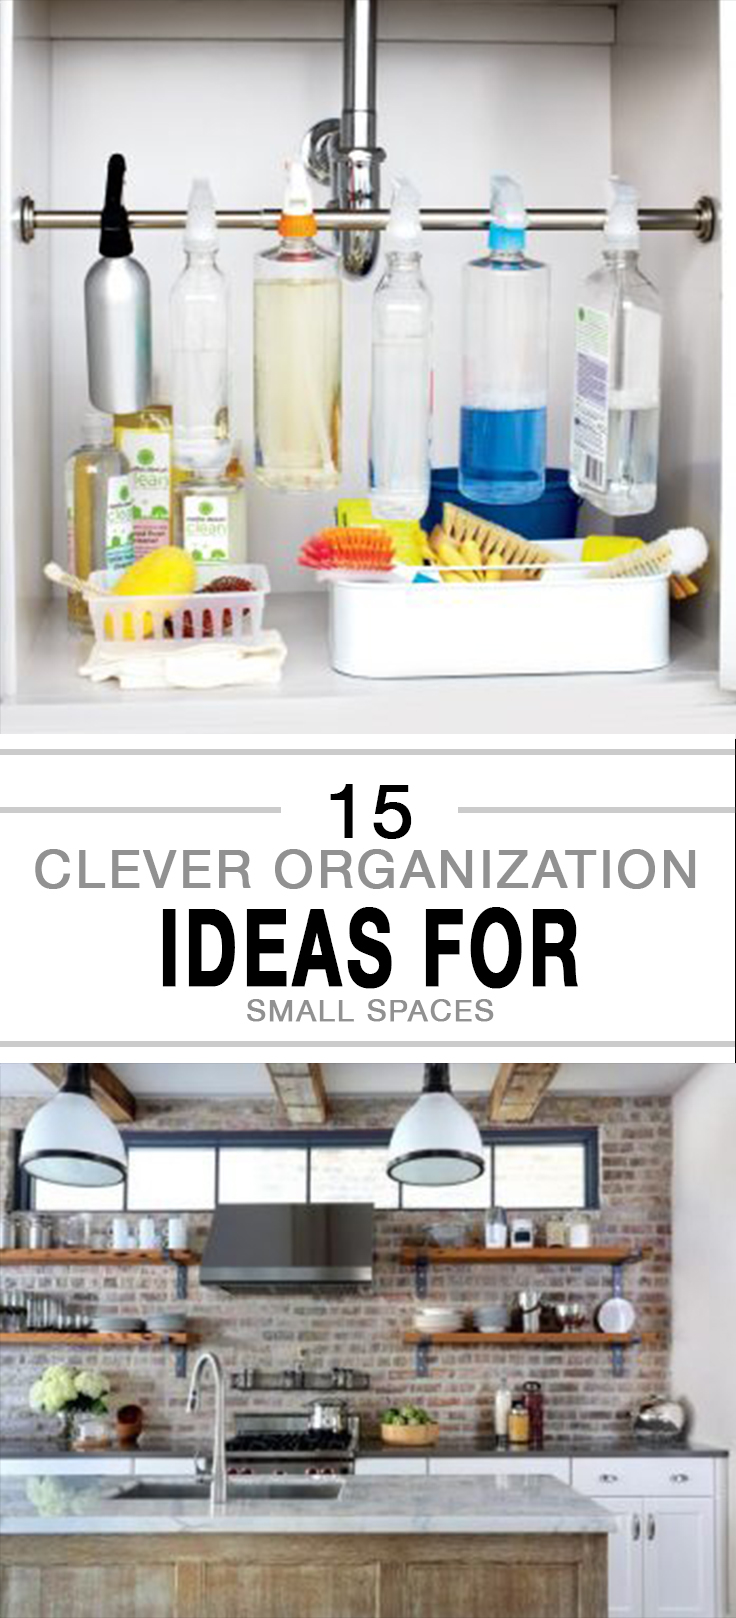 15 clever organization ideas for small spaces Small home organization